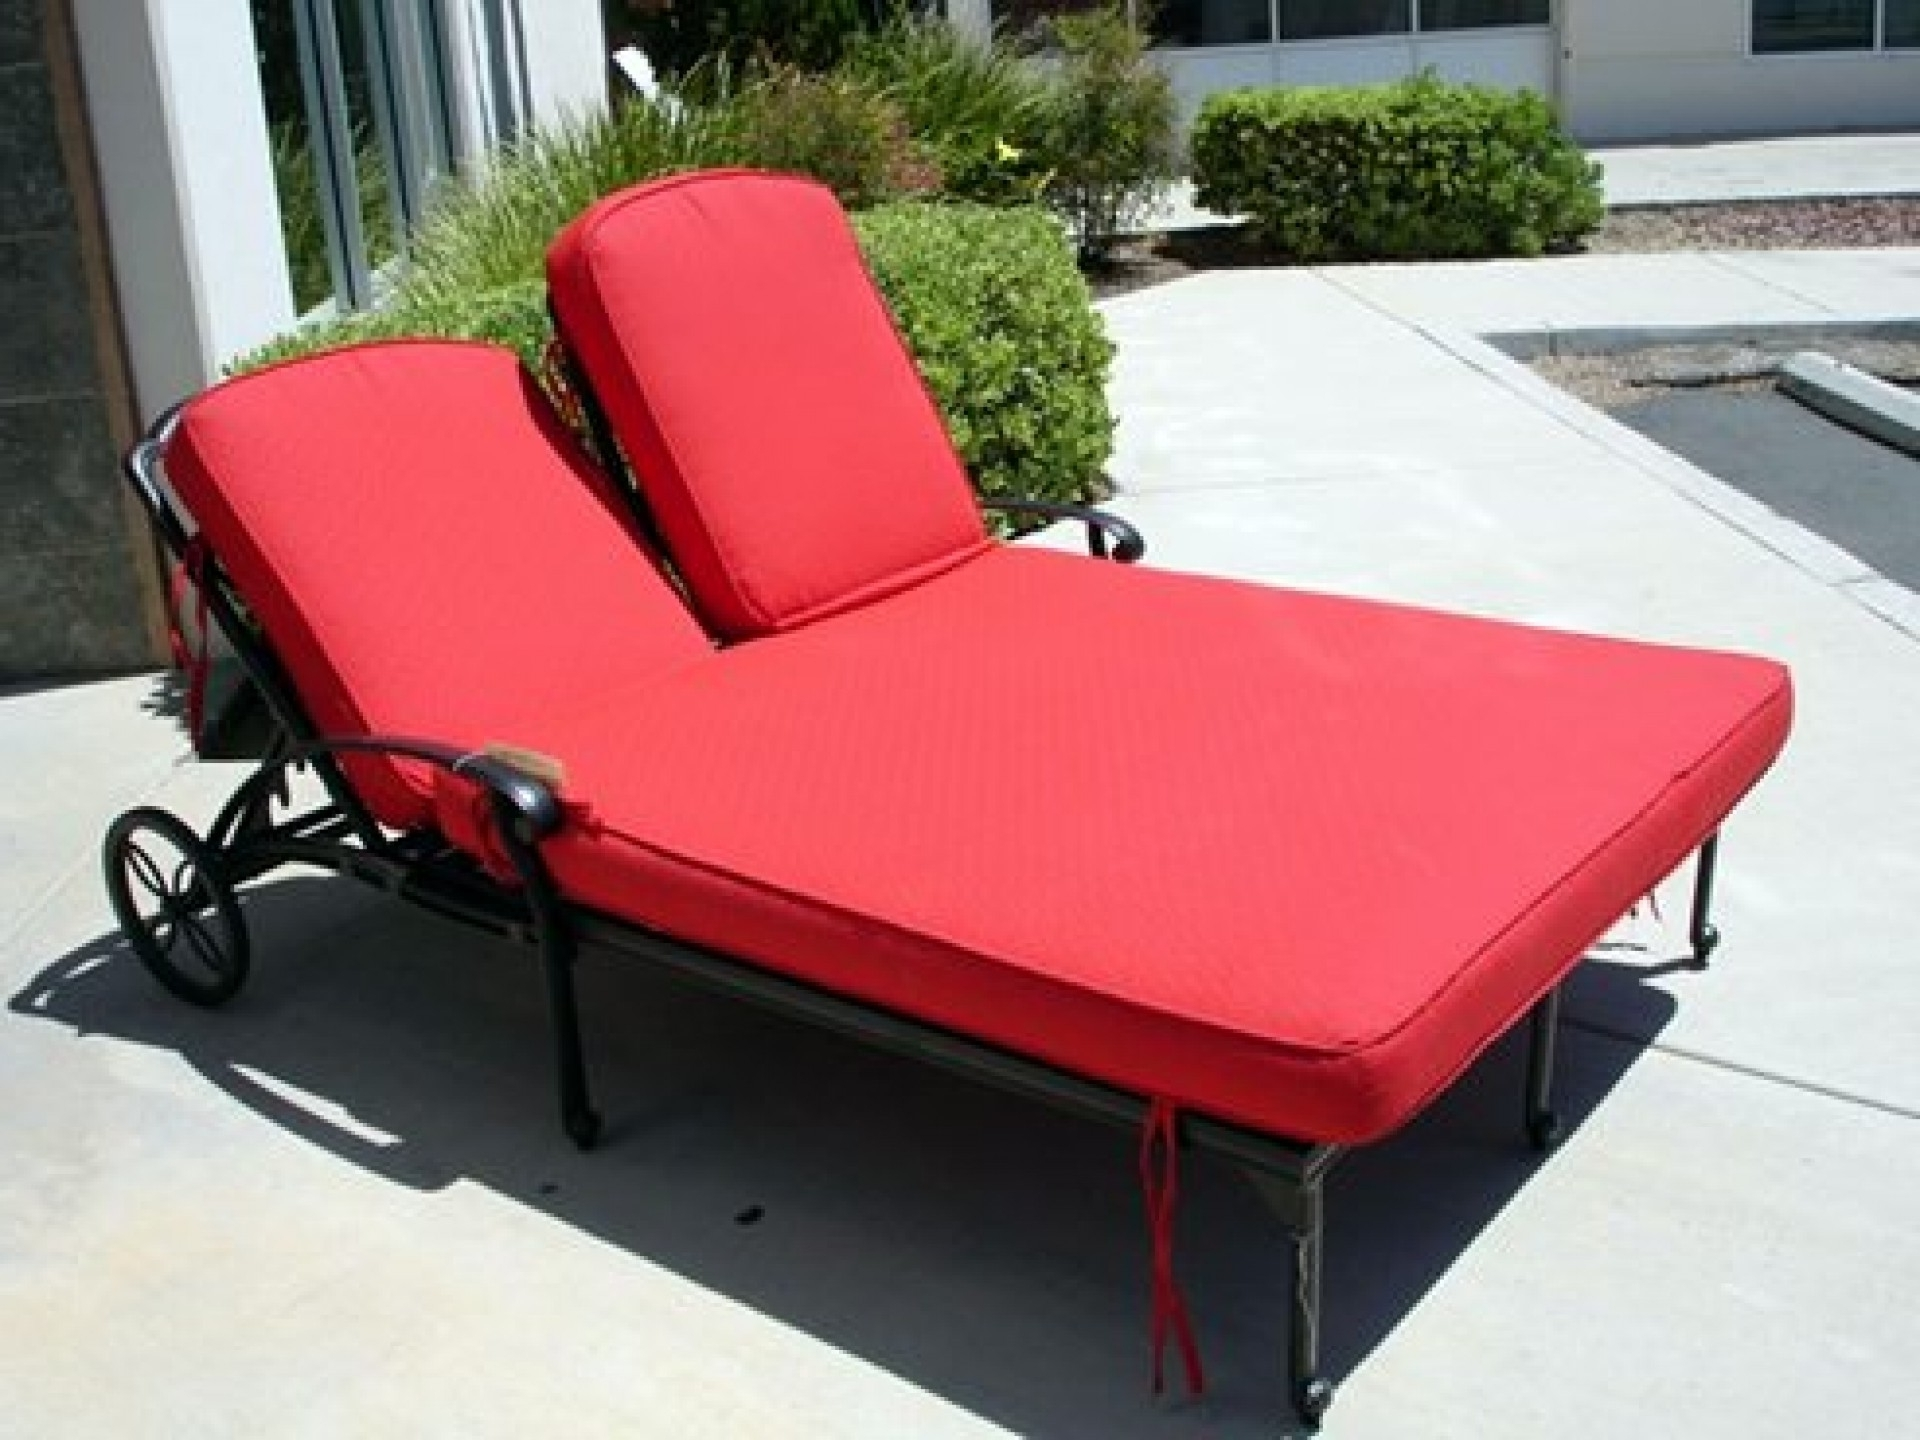 Best And Newest Convertible Chair : Patio Seat Covers Outdoor Patio Bench Cushions Intended For Patio Double Chaise Lounges (View 13 of 15)